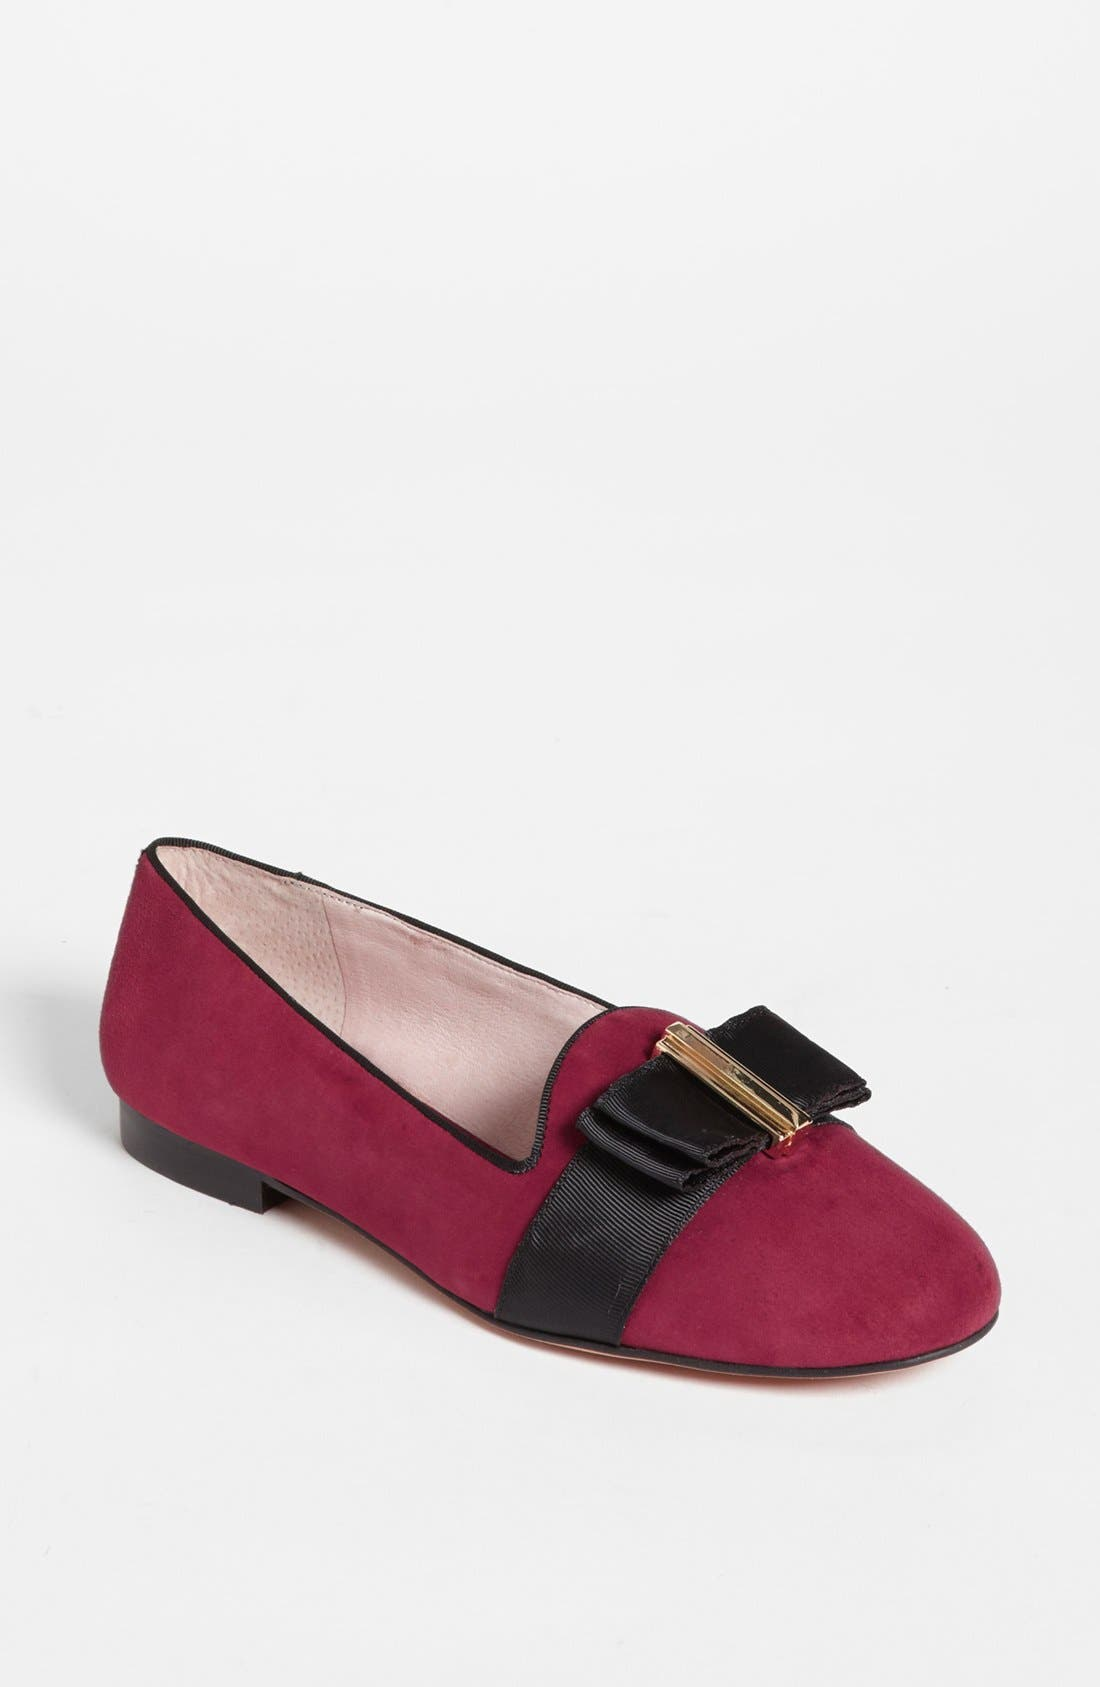 Alternate Image 1 Selected - Vince Camuto 'Ecie' Flat